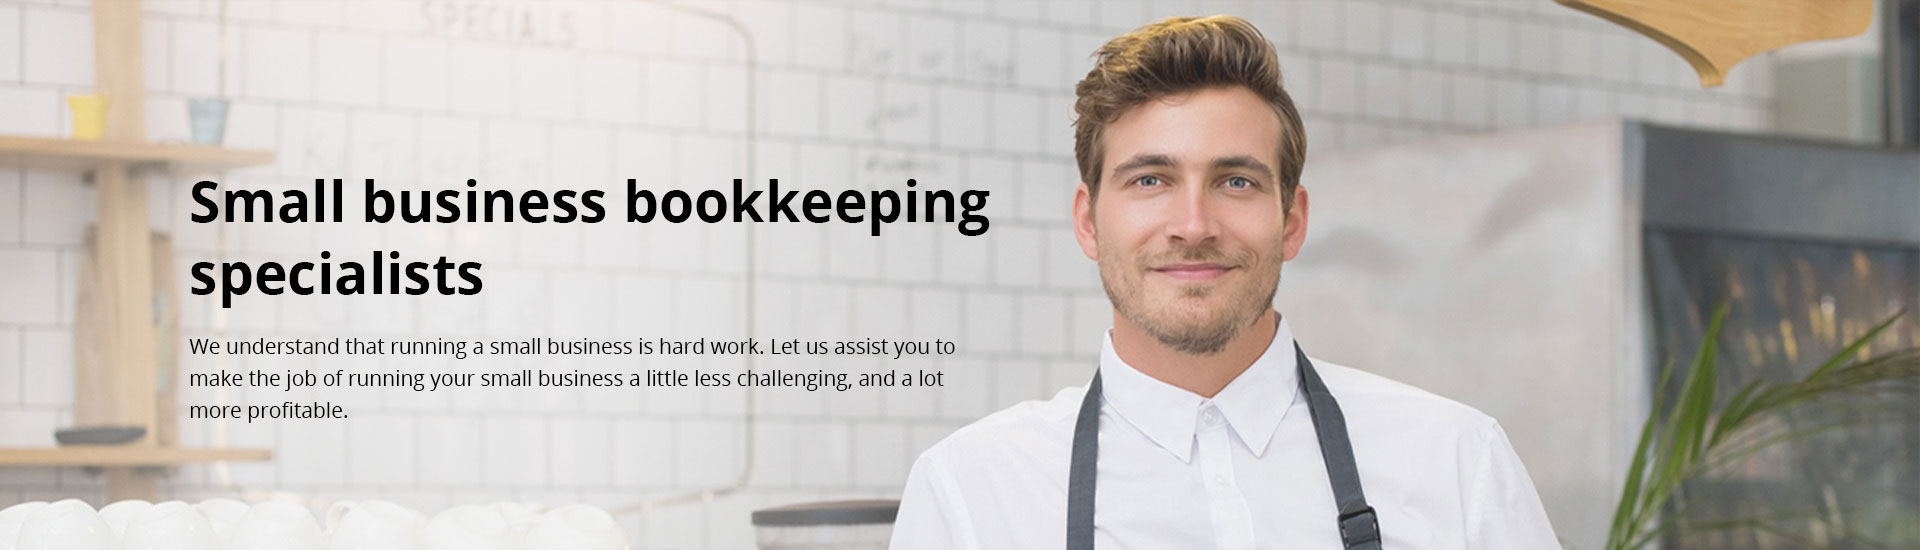 Small business bookkeeping specialists. We understand that running a small business is hard work. Let us assist you to make the job or running your small business a little less challenging and a lot more profitable.